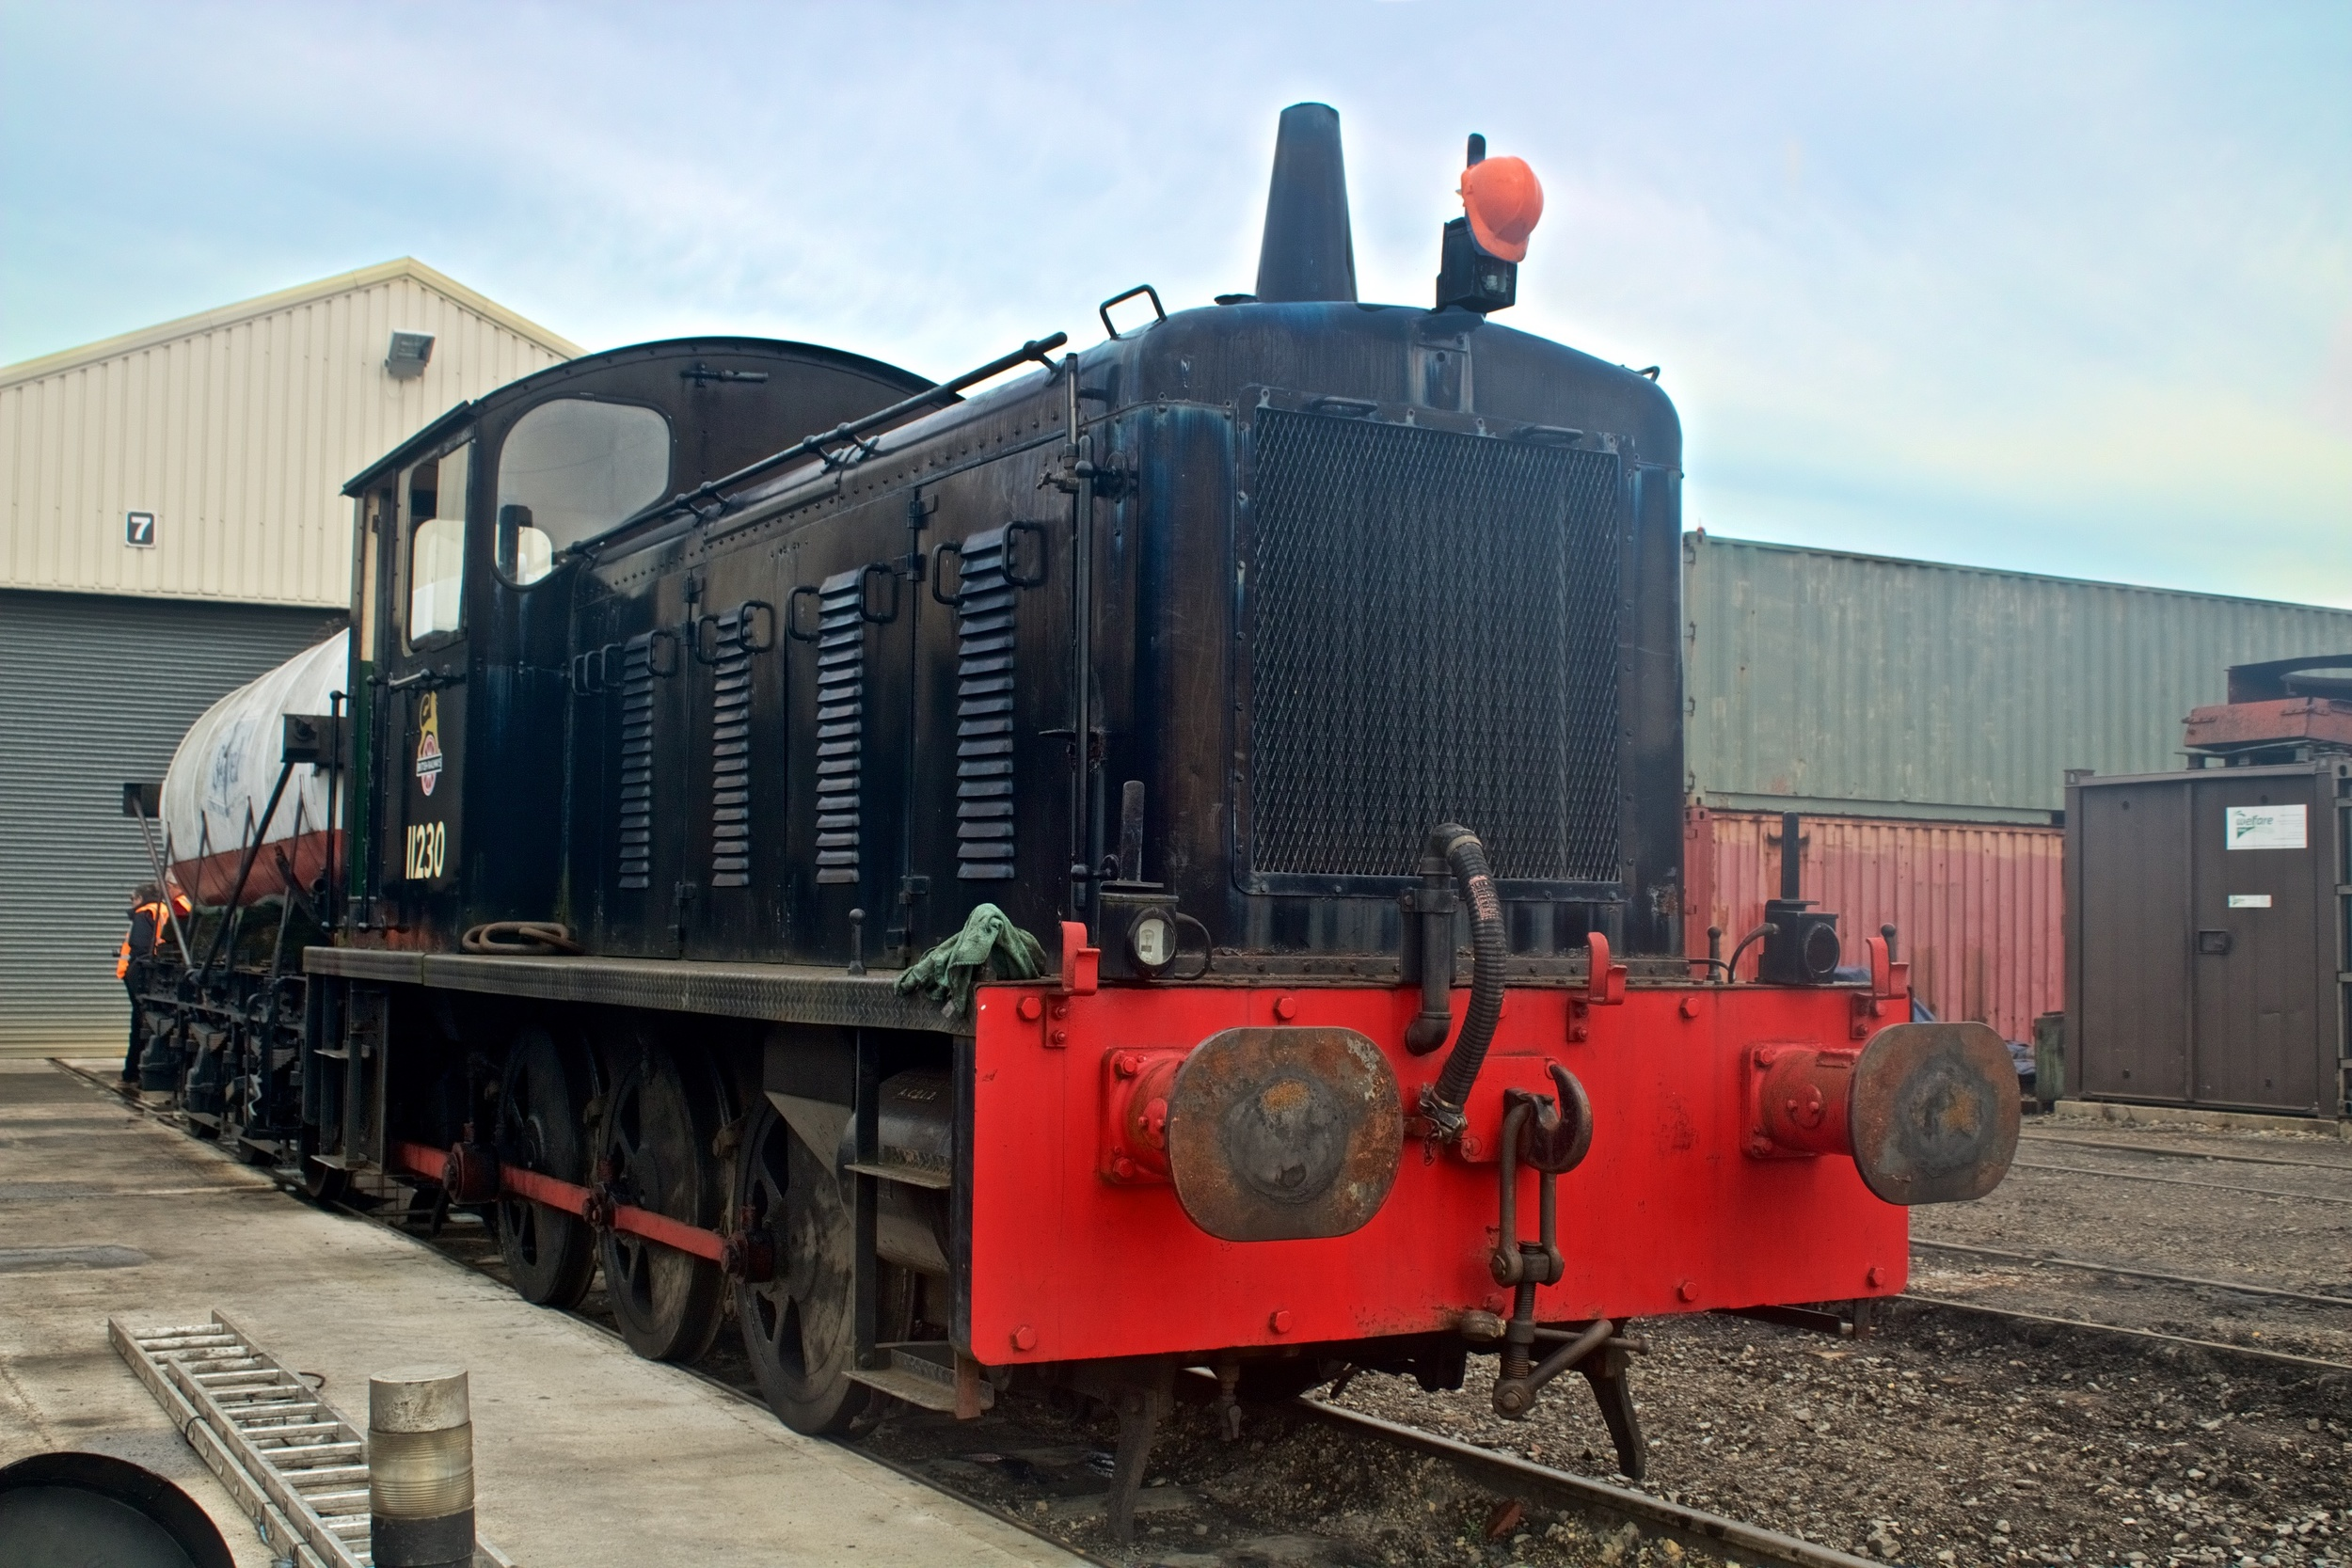 04 Class loco on the Gloucester and Warwickshire Railway - Photo: Gwion Rhys Davies